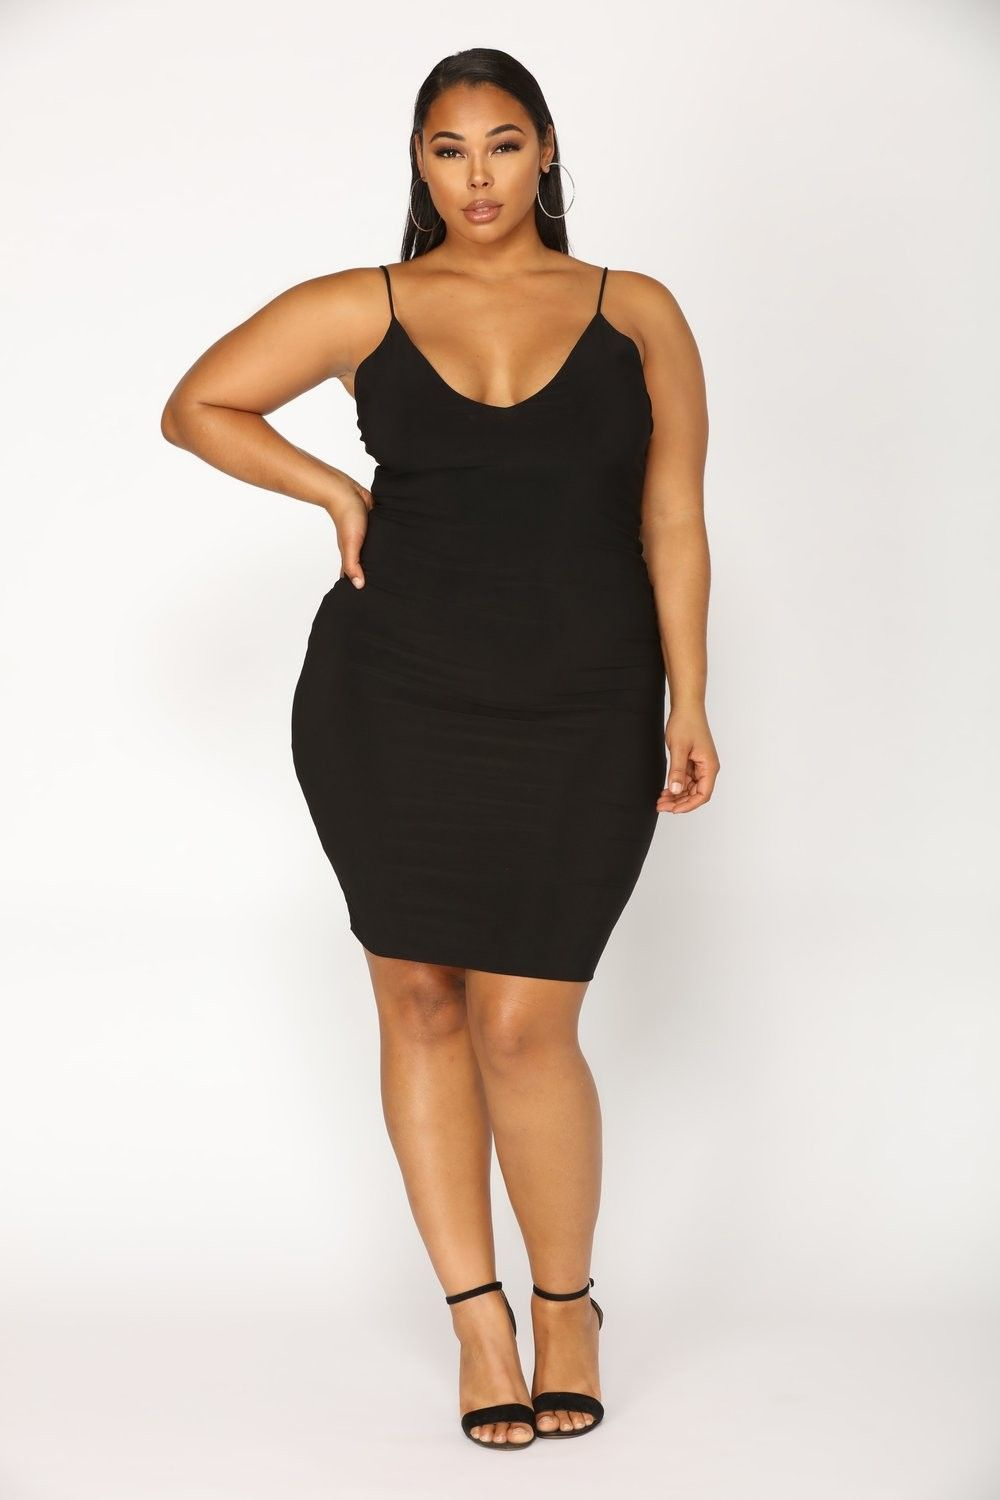 dacd4a8344c2 Plus Size Simple Kind Of Life Dress - Black $29.99 #fashion #ootd #outfit